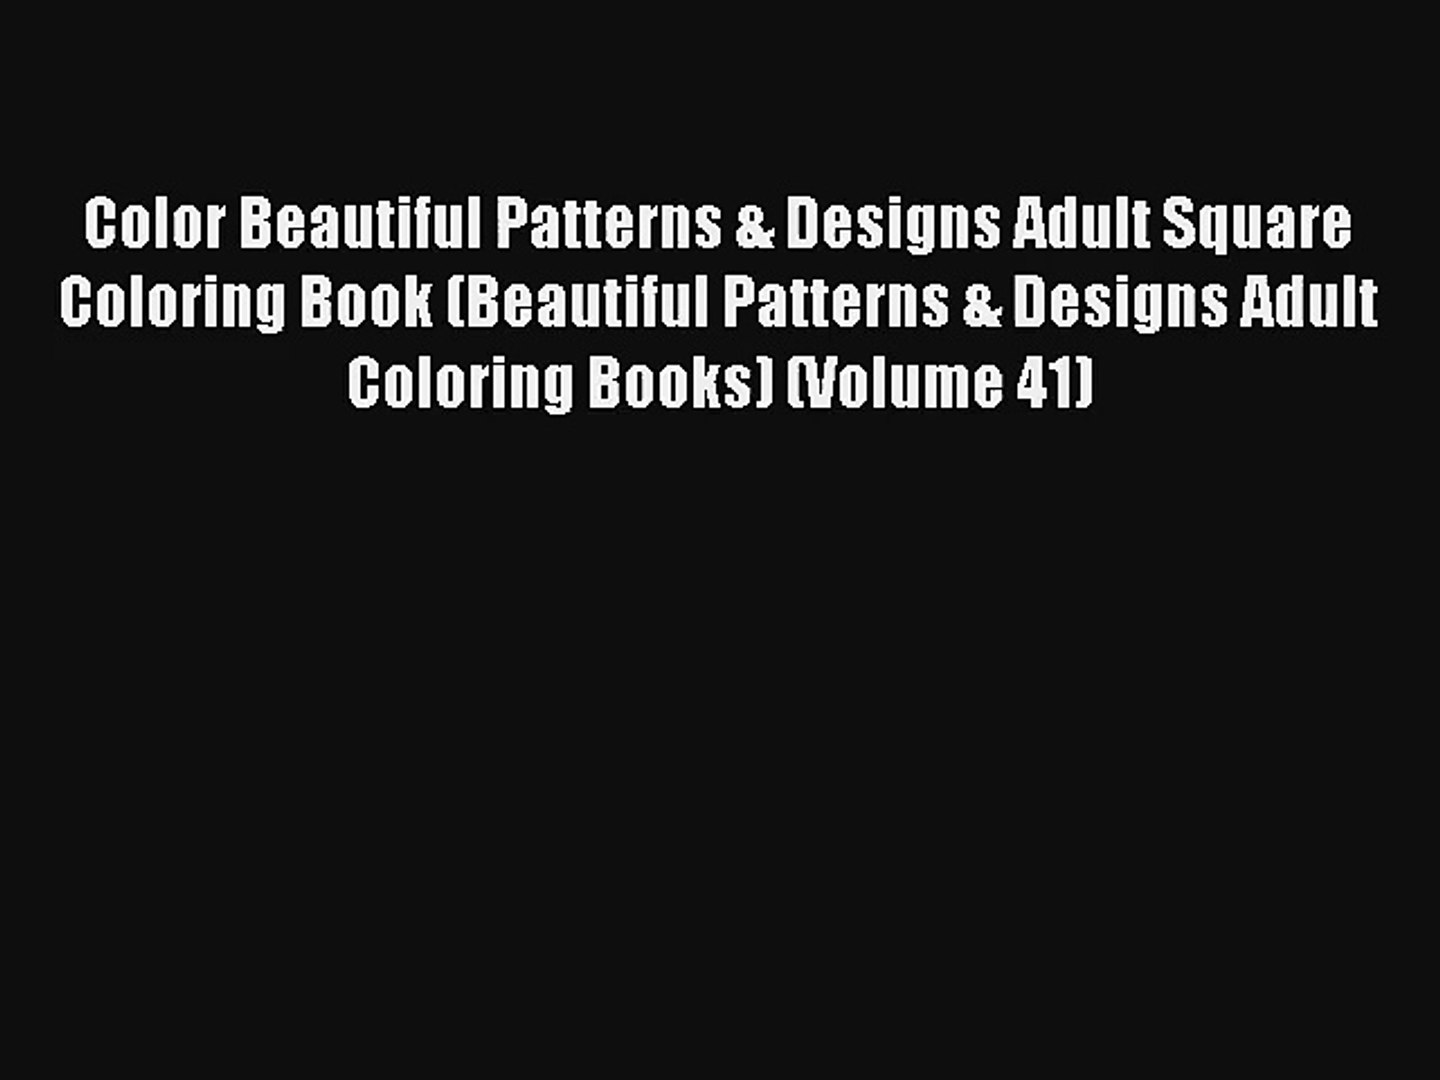 Color Beautiful Patterns & Designs Adult Square Coloring Book (Beautiful Patterns & Designs